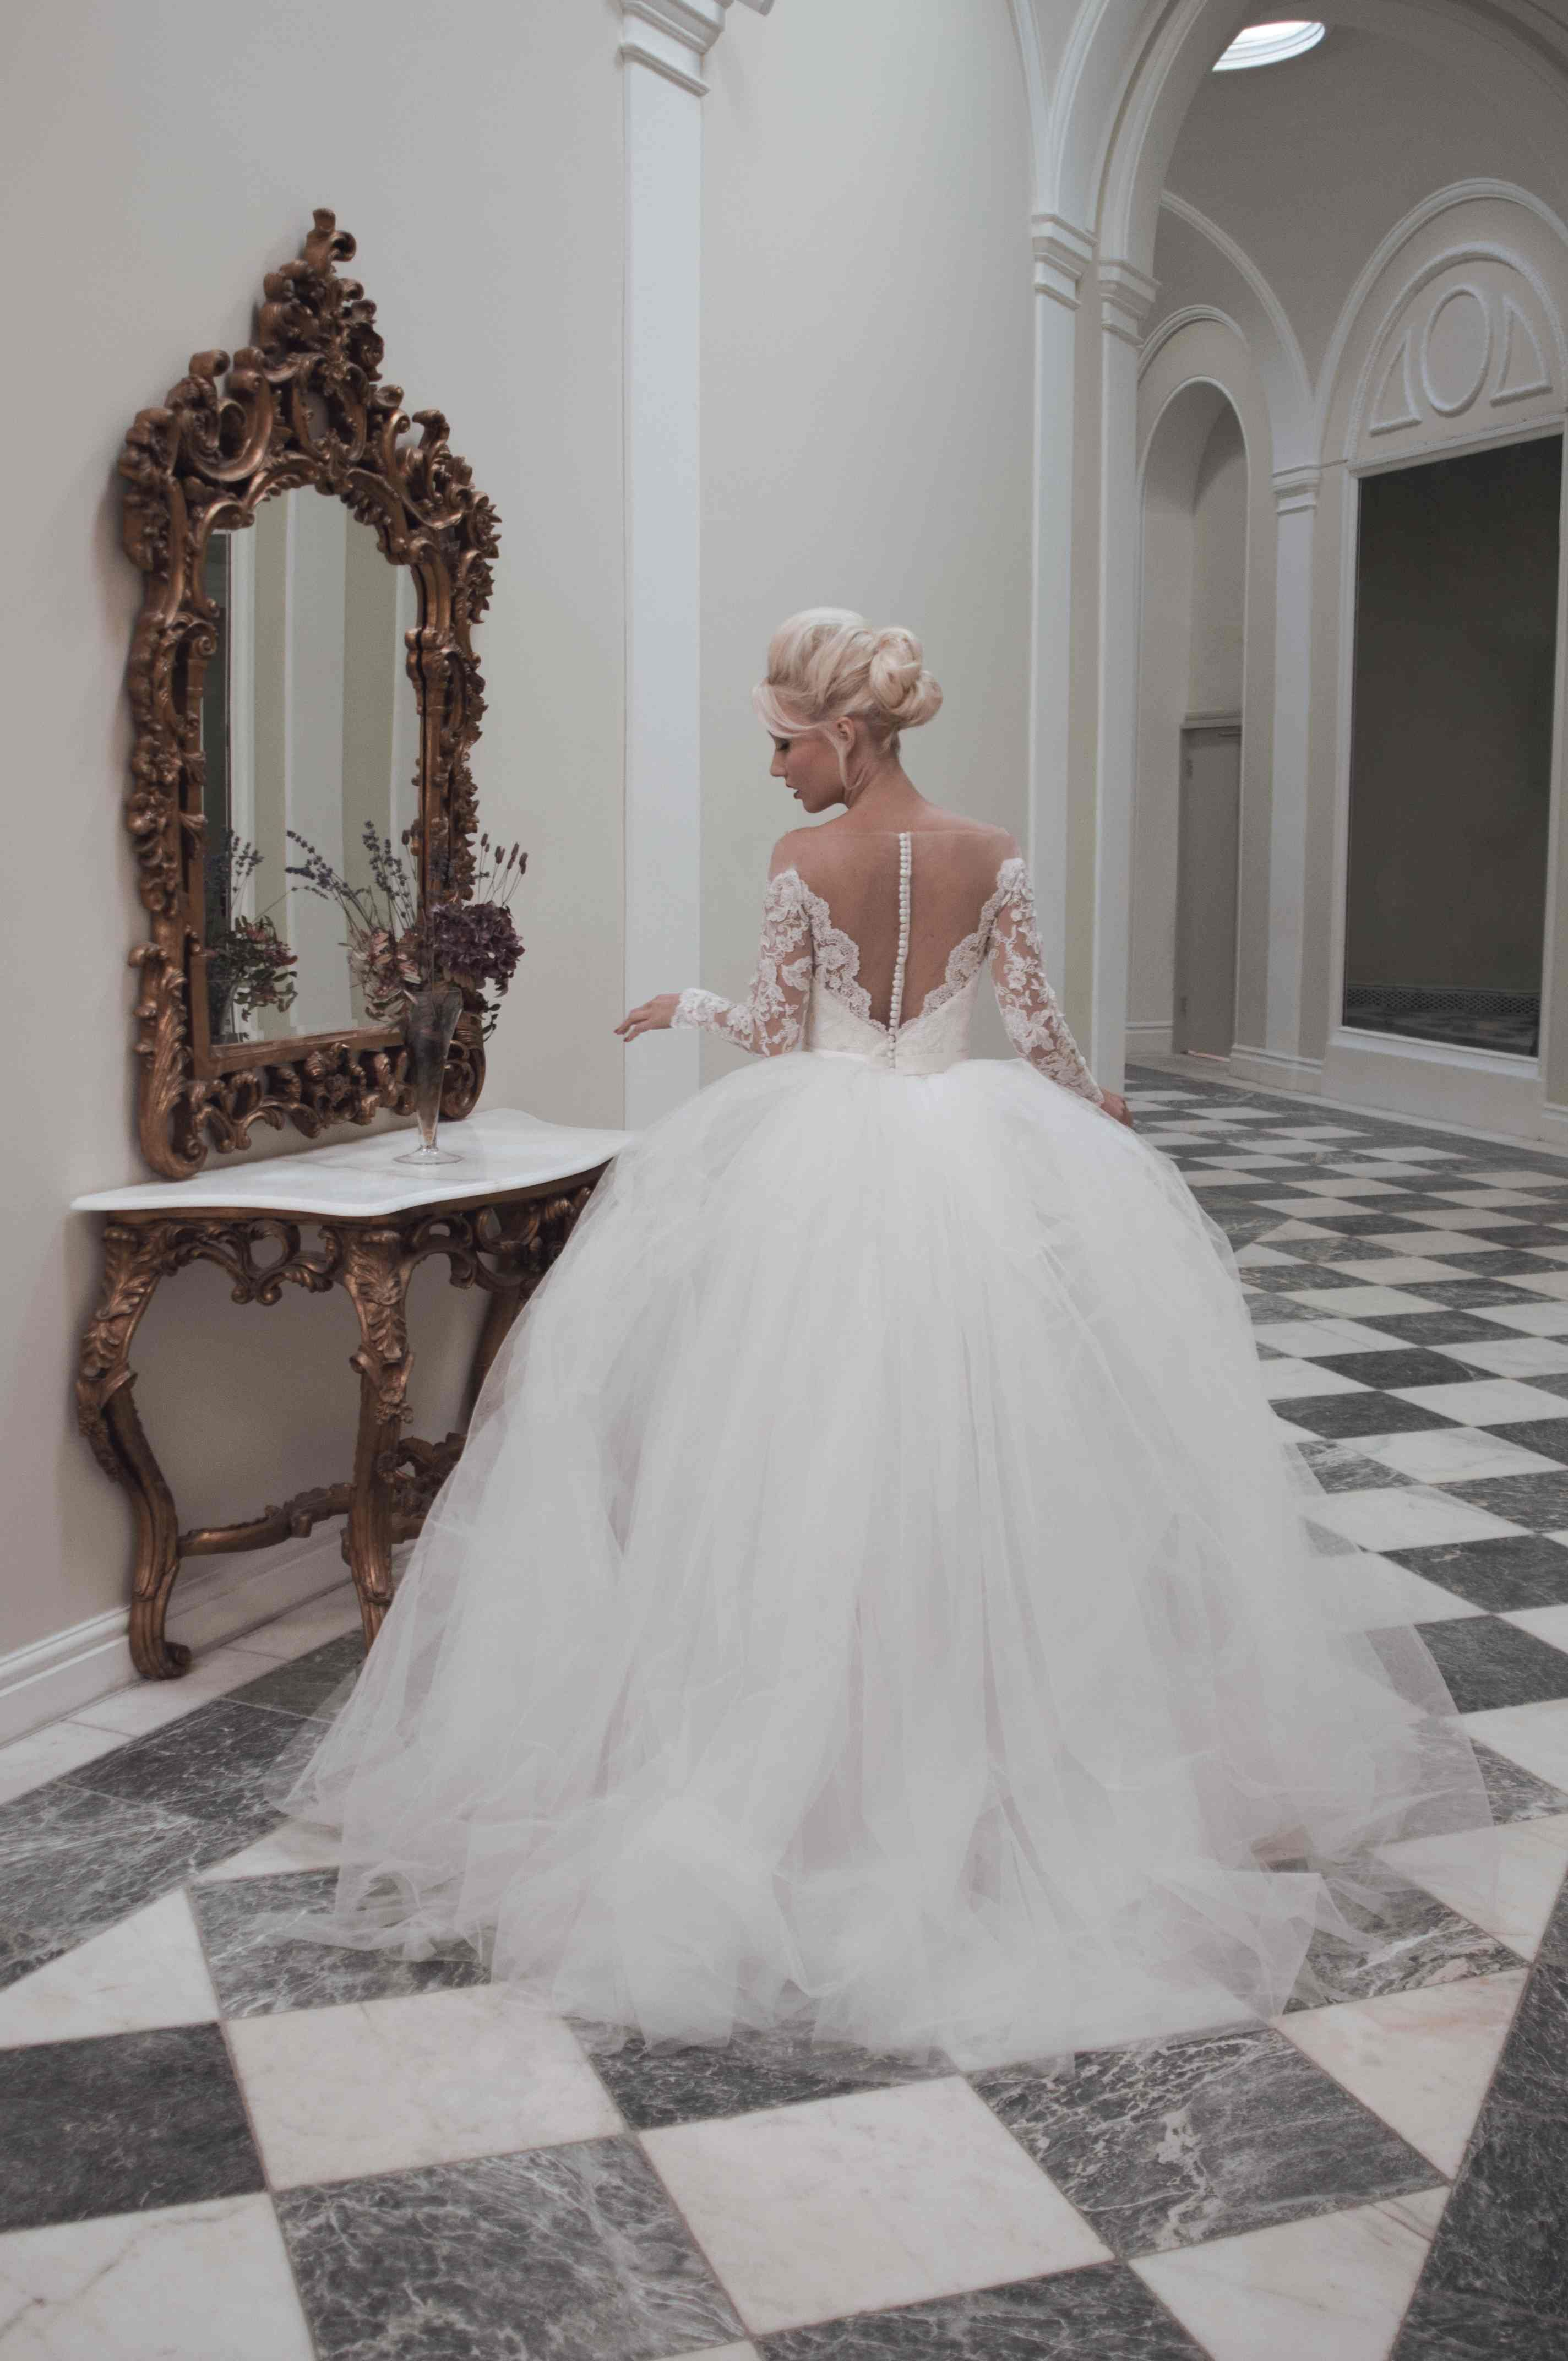 Juliette A Short Fitted Pencil Wedding Dress With Sheer Illusion Back And Shoulders A Simply St Ball Gowns Wedding Wedding Dress Long Sleeve Wedding Dresses [ 4288 x 2848 Pixel ]